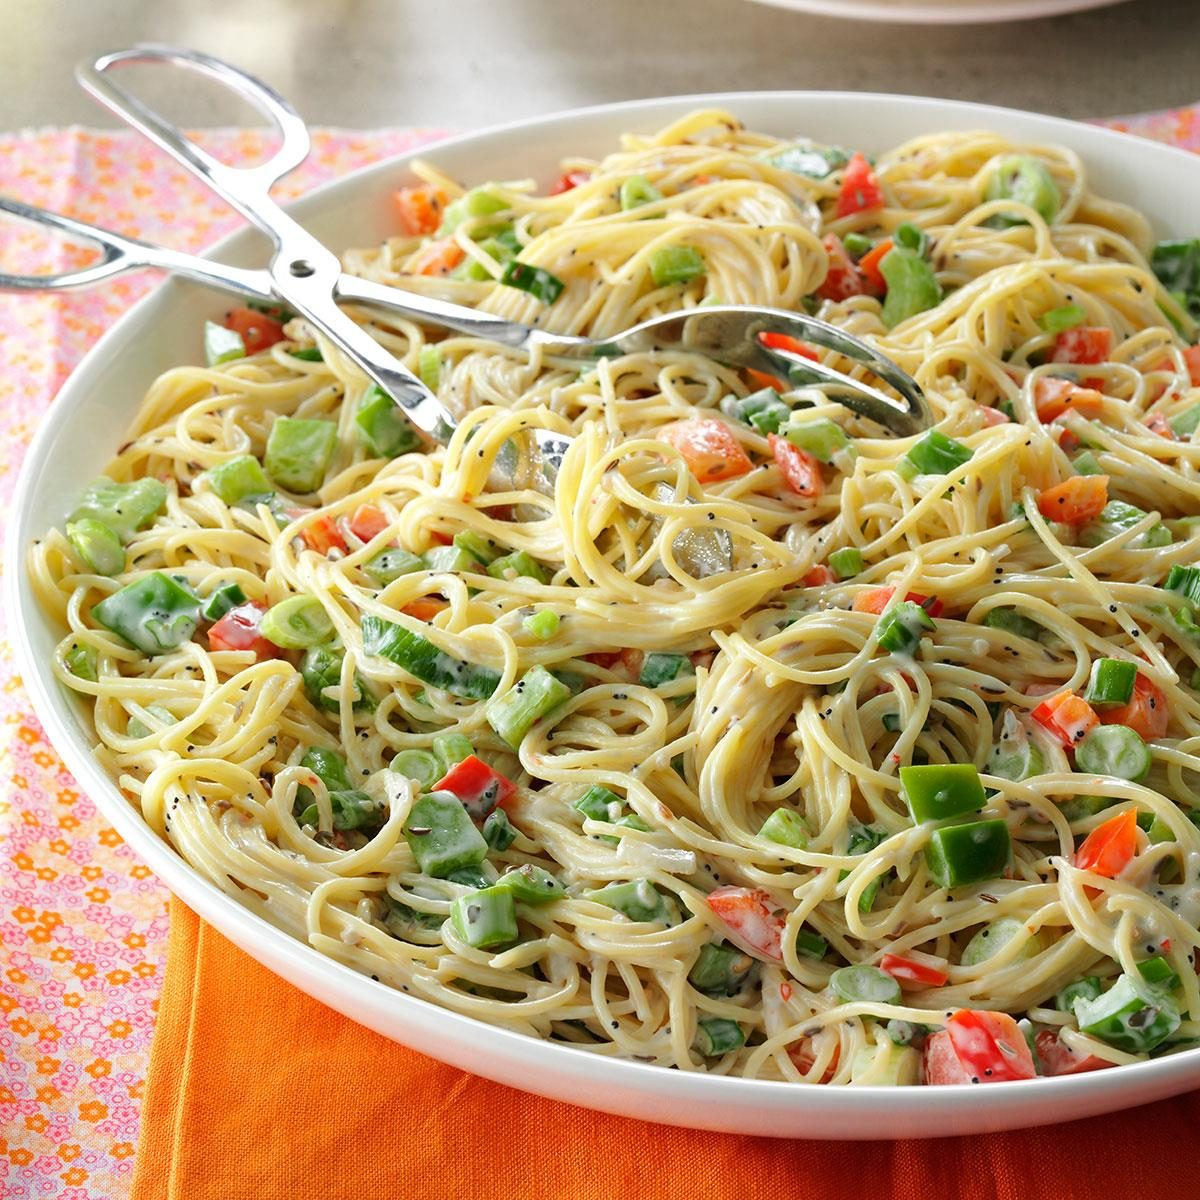 Image Result For Pasta Salad With Chicken And Spinach